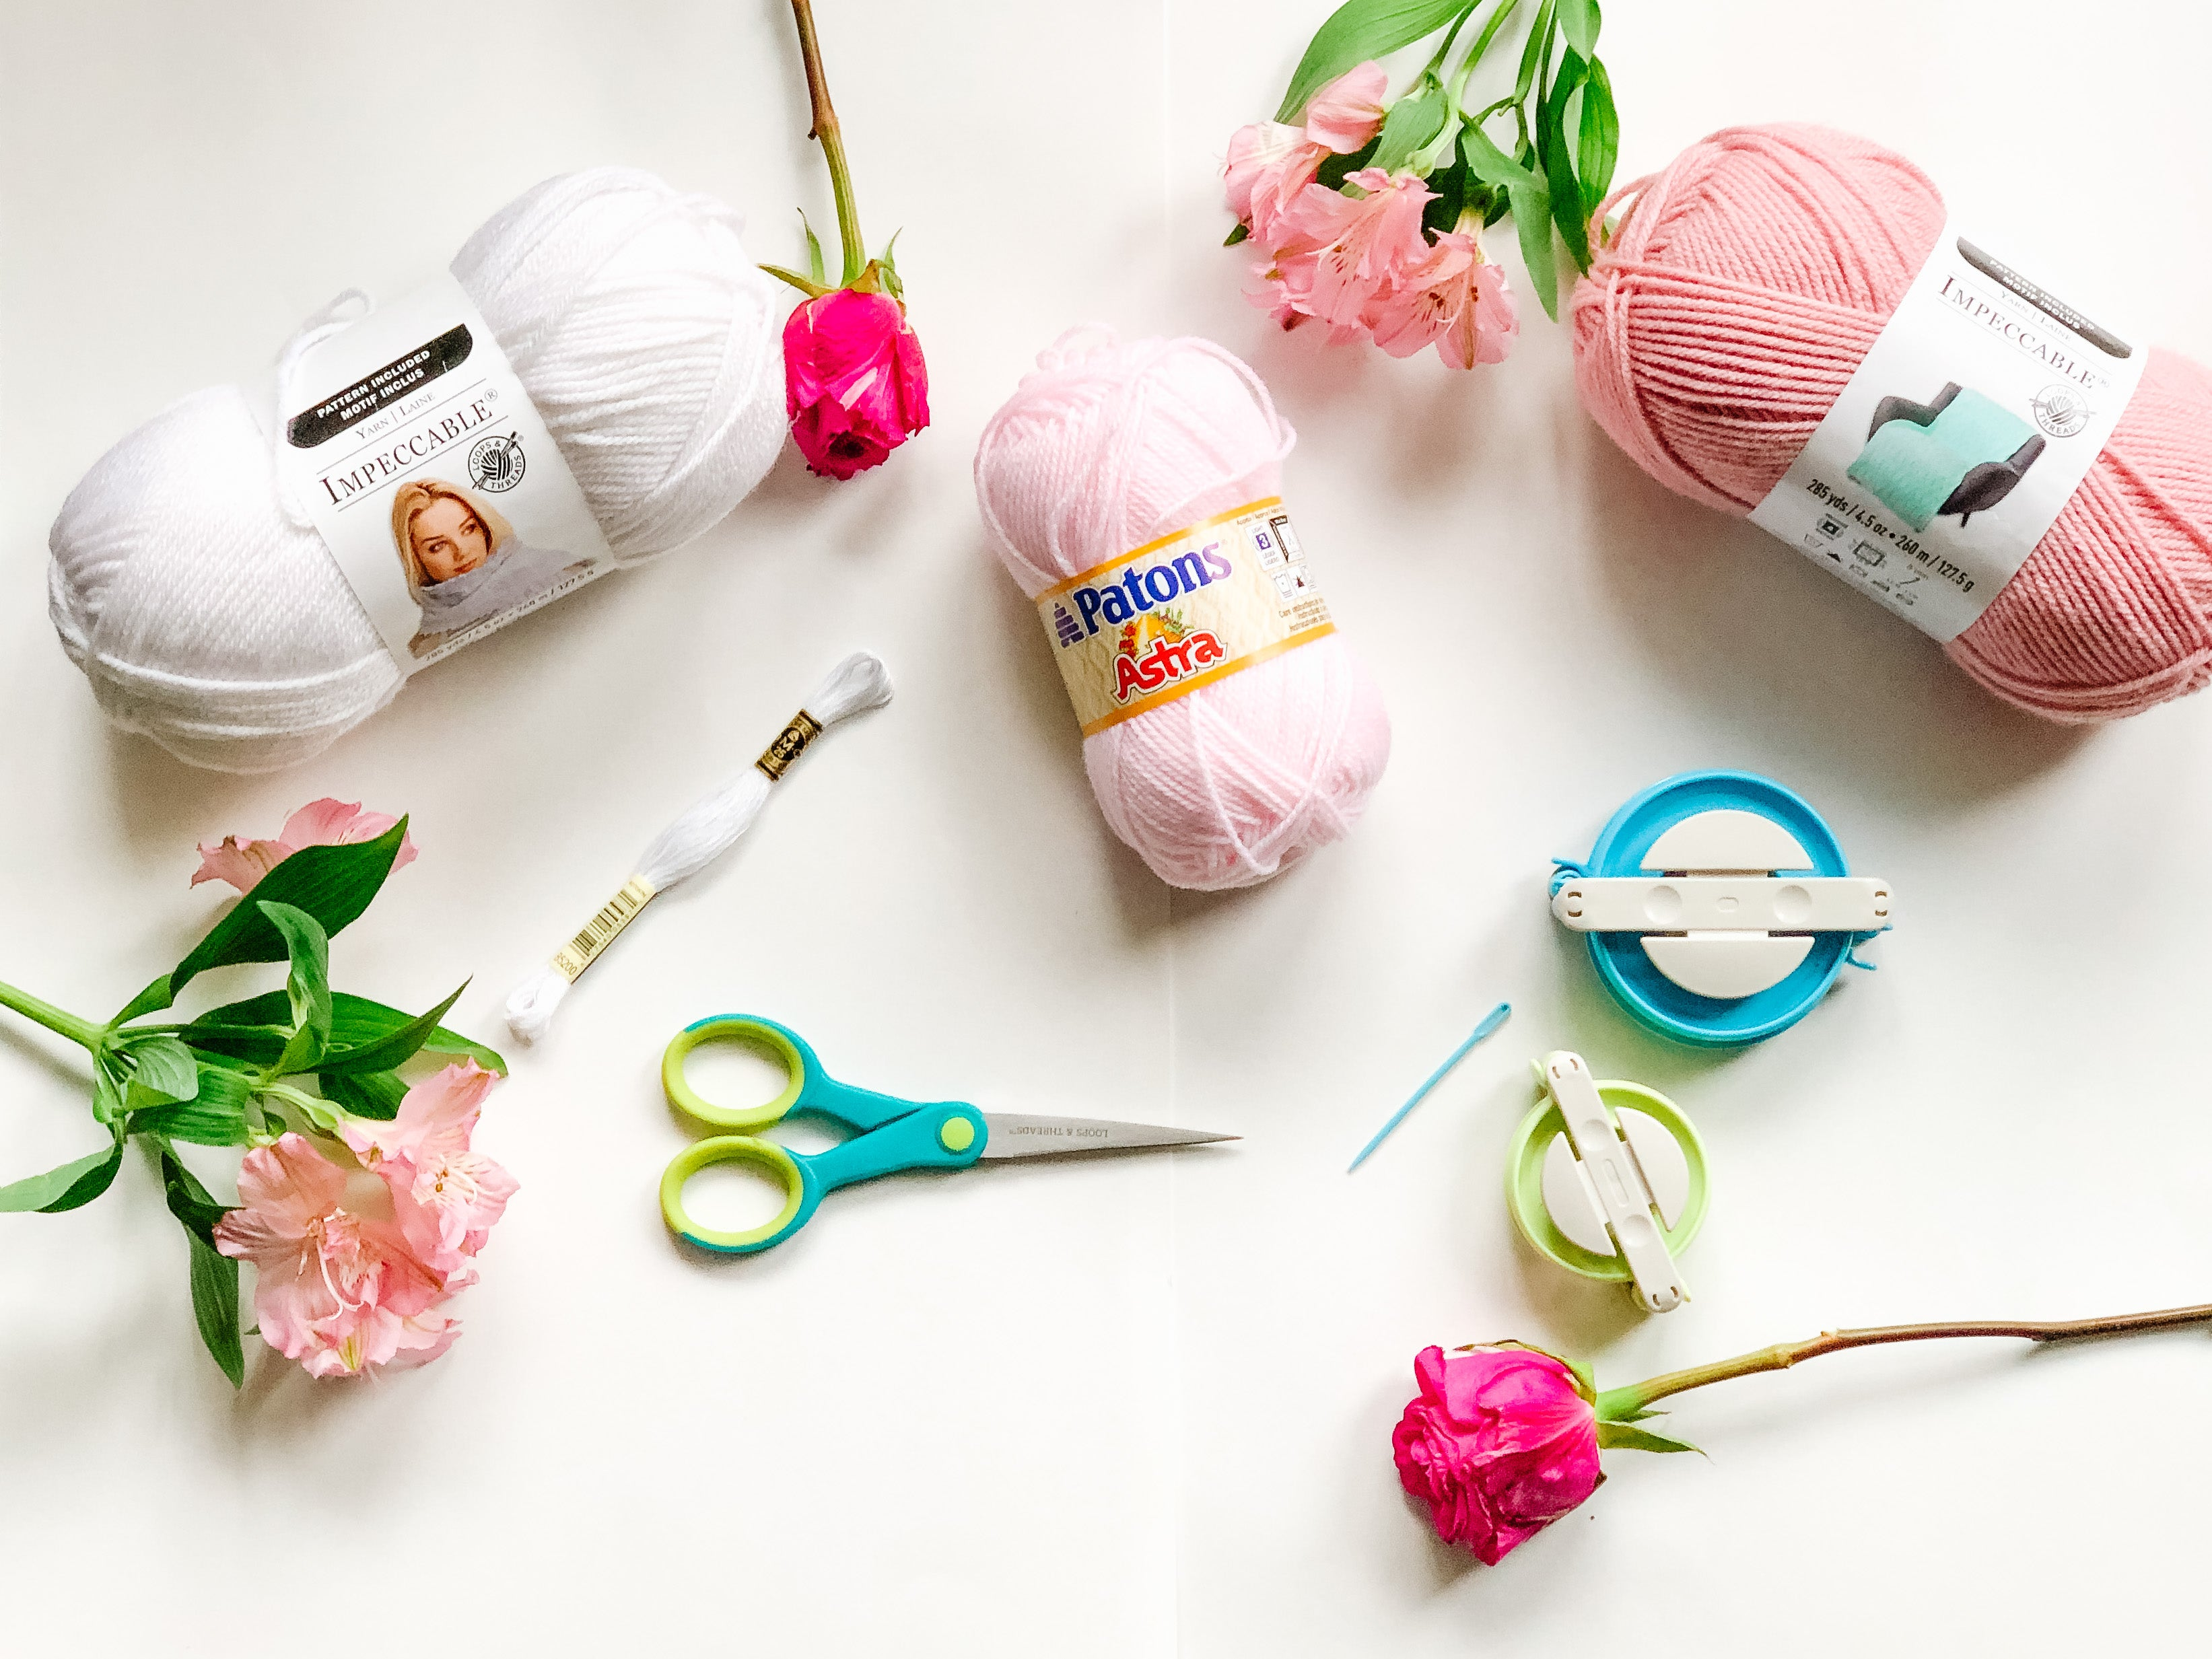 yarn for diy pom pom garland on white surface with flowers and scissors